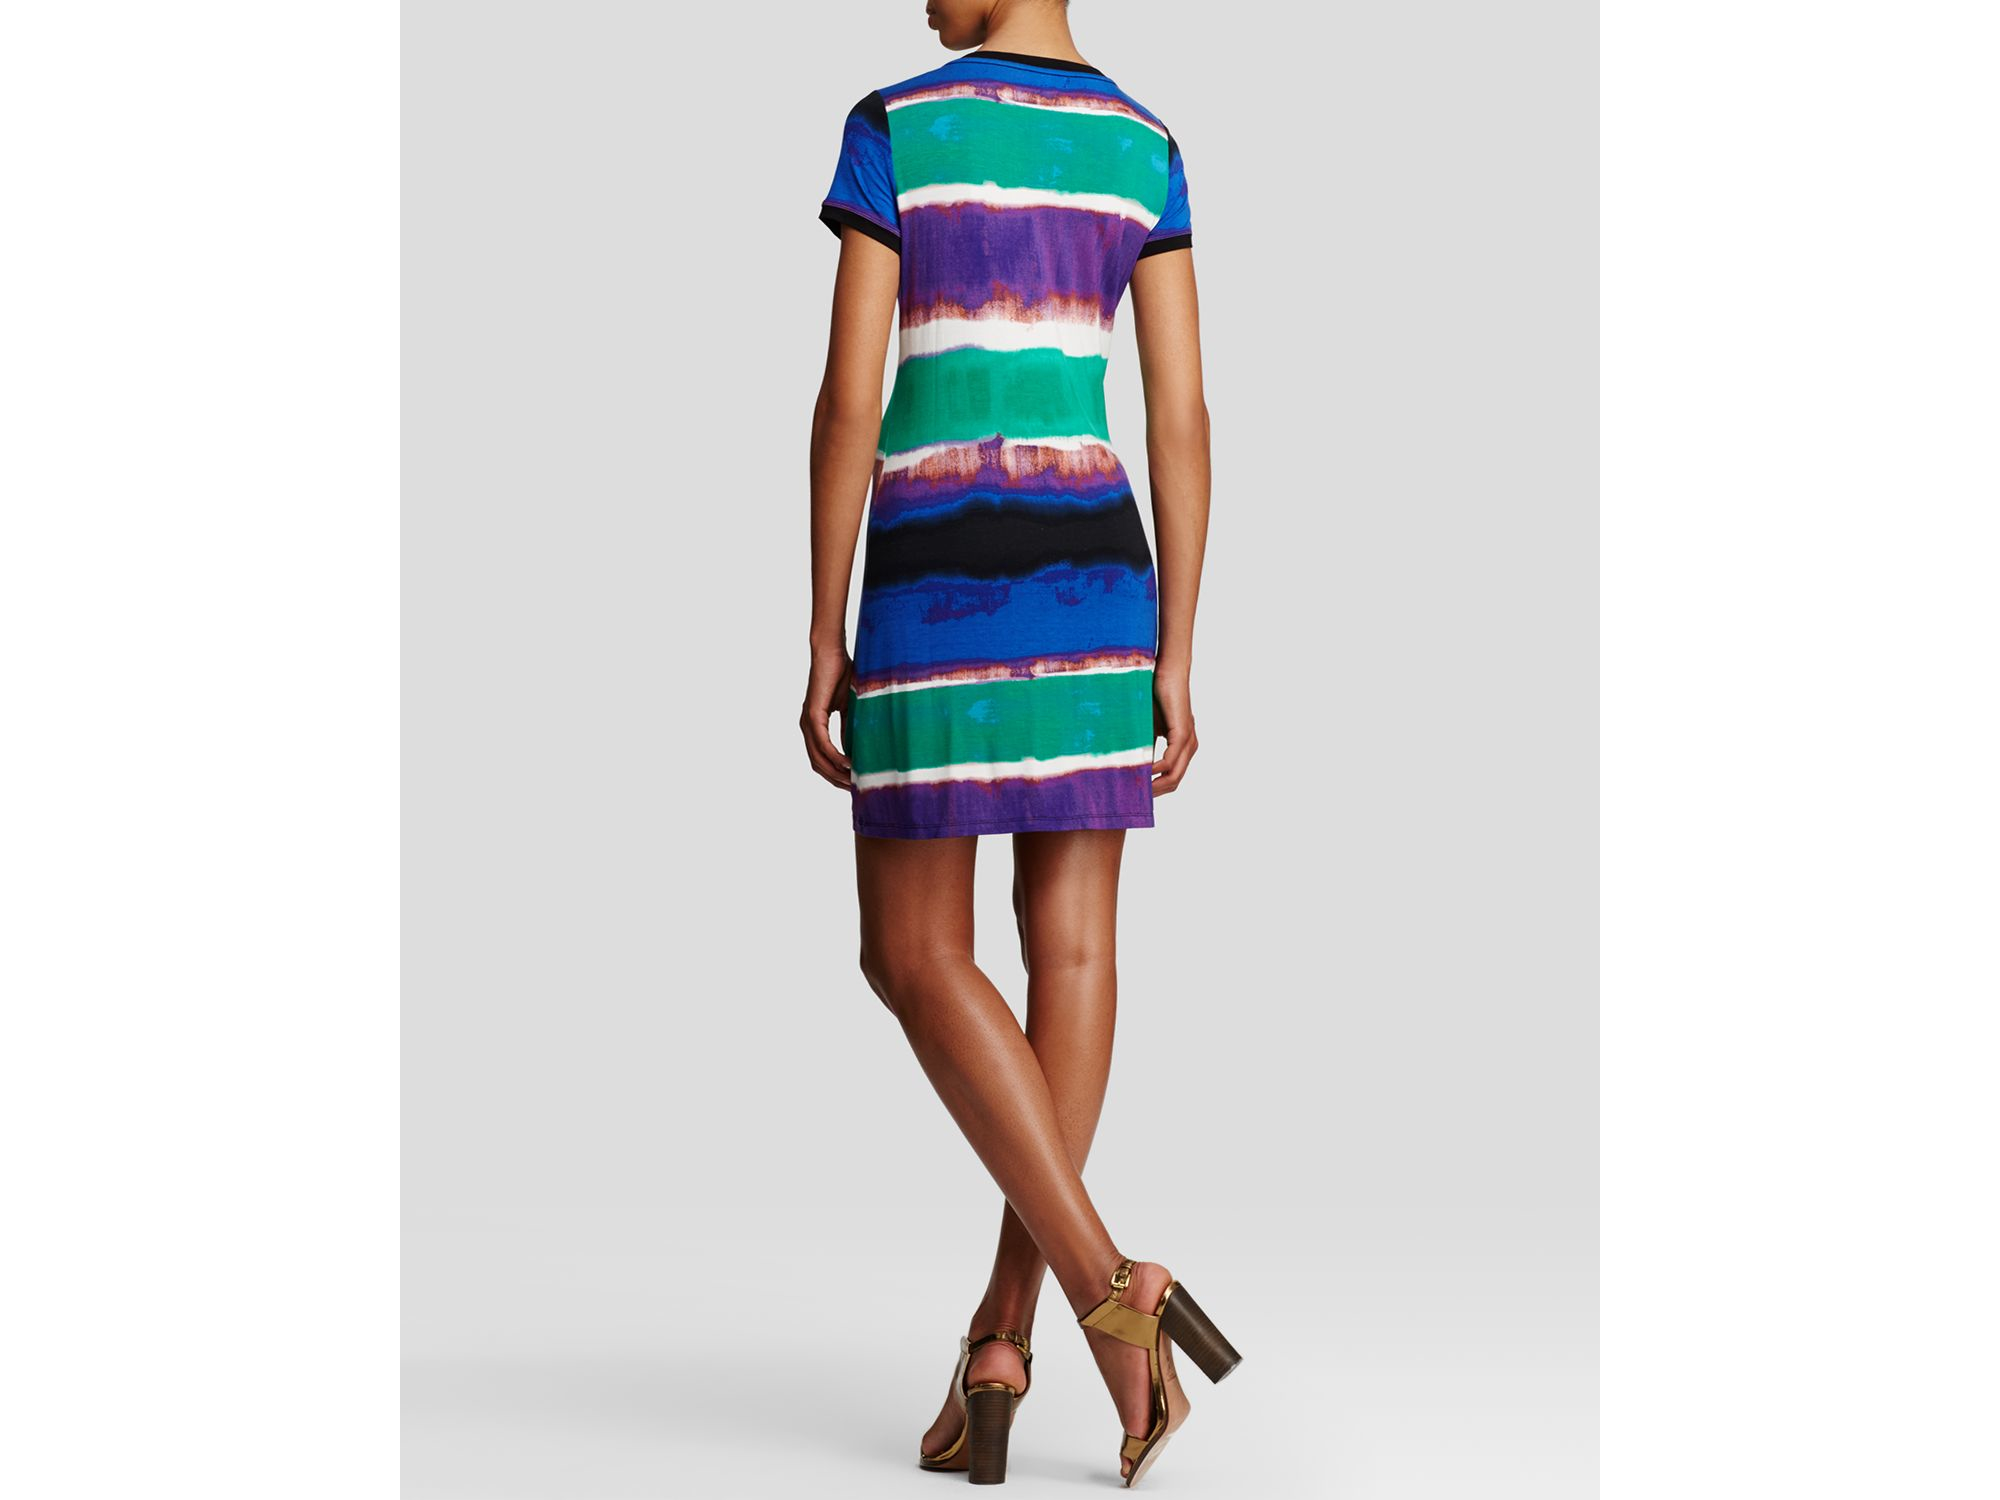 76875d7cc7f Calvin Klein Abstract Stripe Tee Dress - Bloomingdale s Exclusive in ...